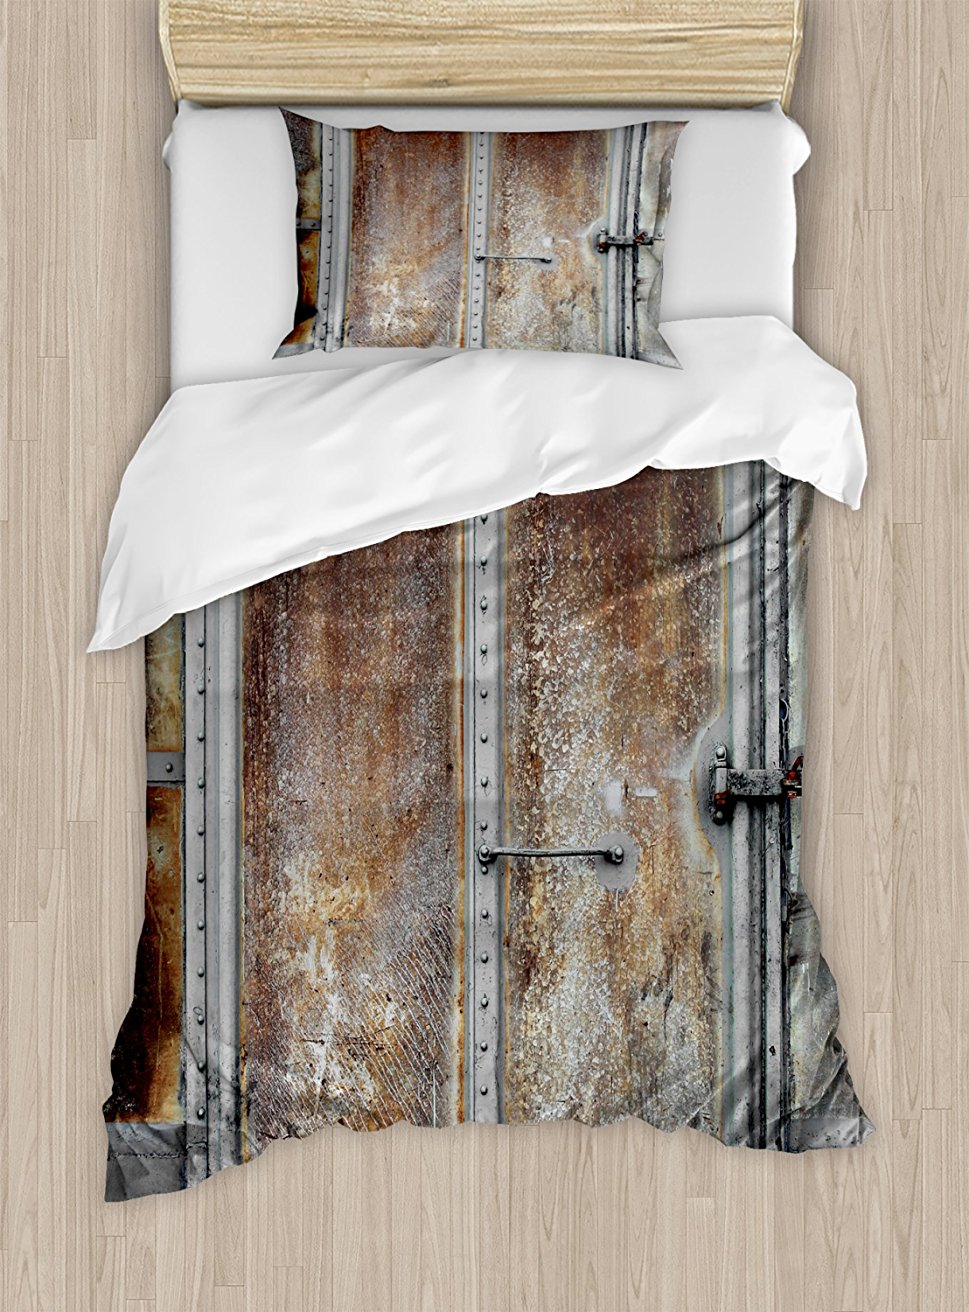 Duvet Cover Set, Vintage Railway Container Door Old Locomotive Transportation Iron Power Design, 4 Piece Bedding Set